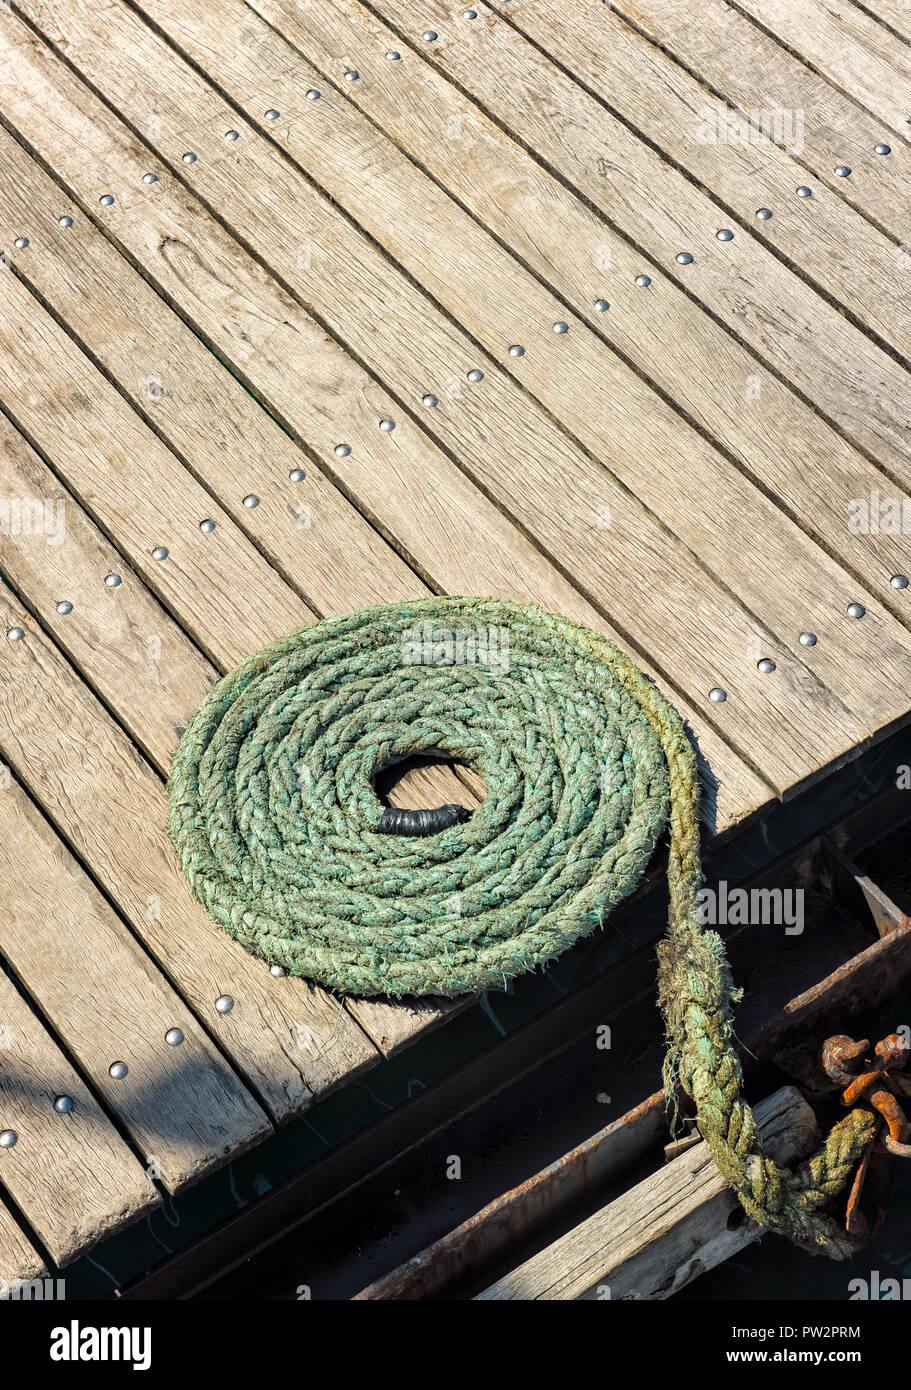 Patterned coil of mooring rope sits on the wooden deck of a wharf awaiting the next boat. - Stock Image